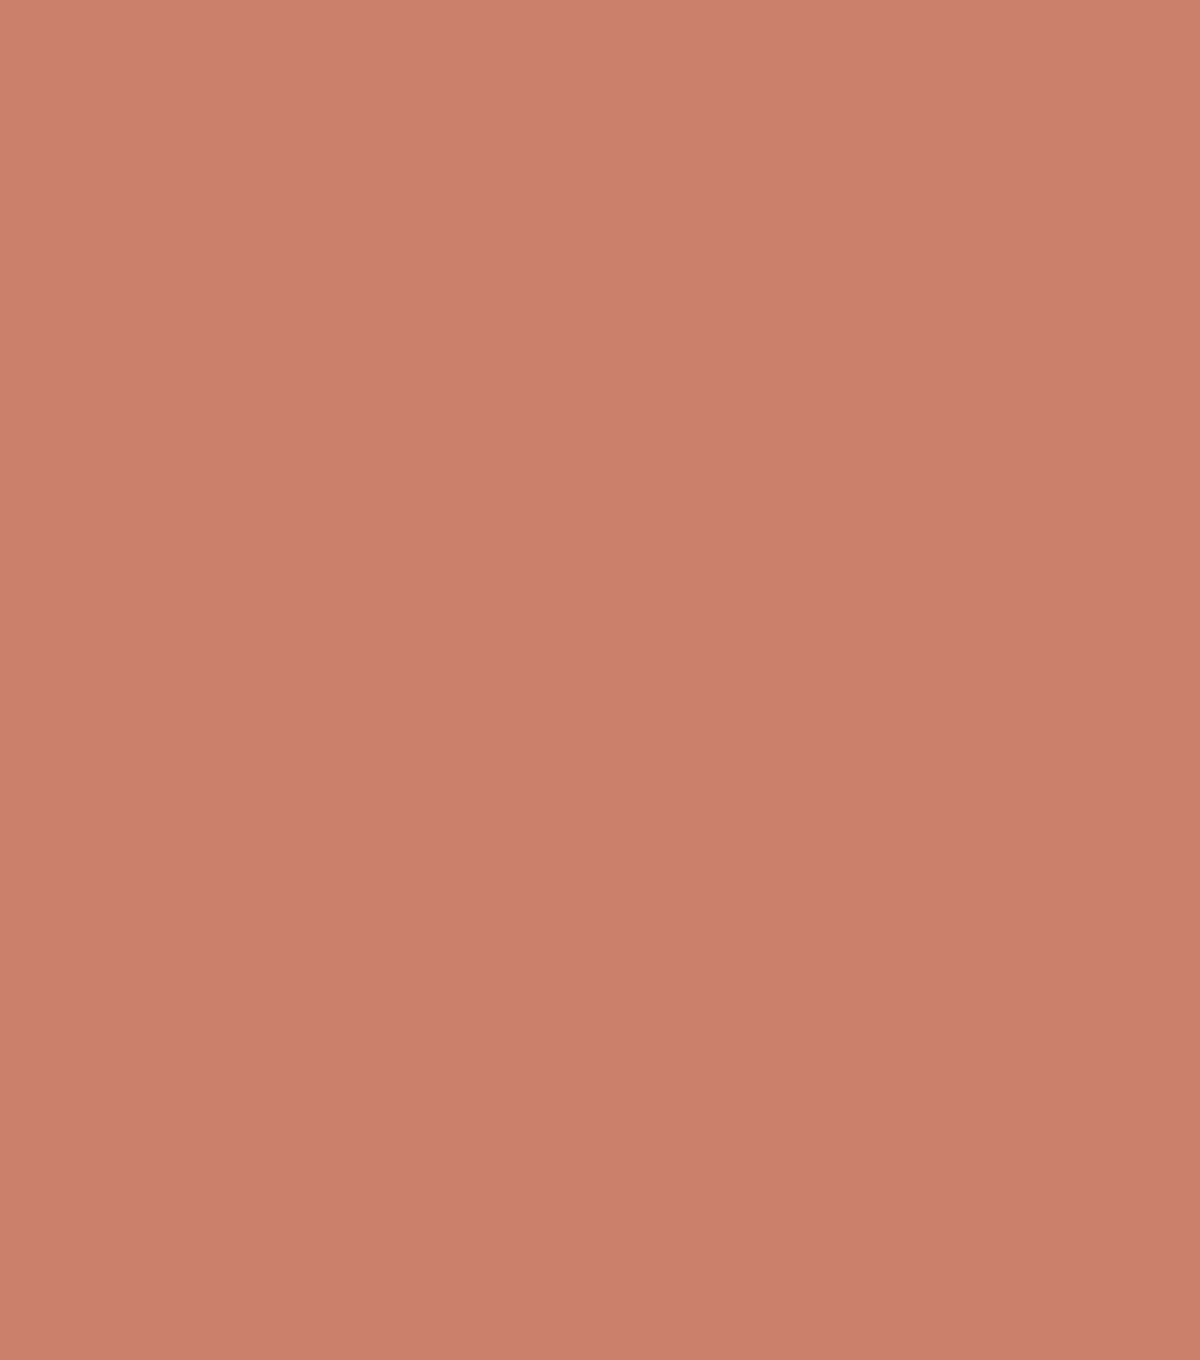 Copic Sketch Marker Solid Color Backgrounds Colorful Wallpaper